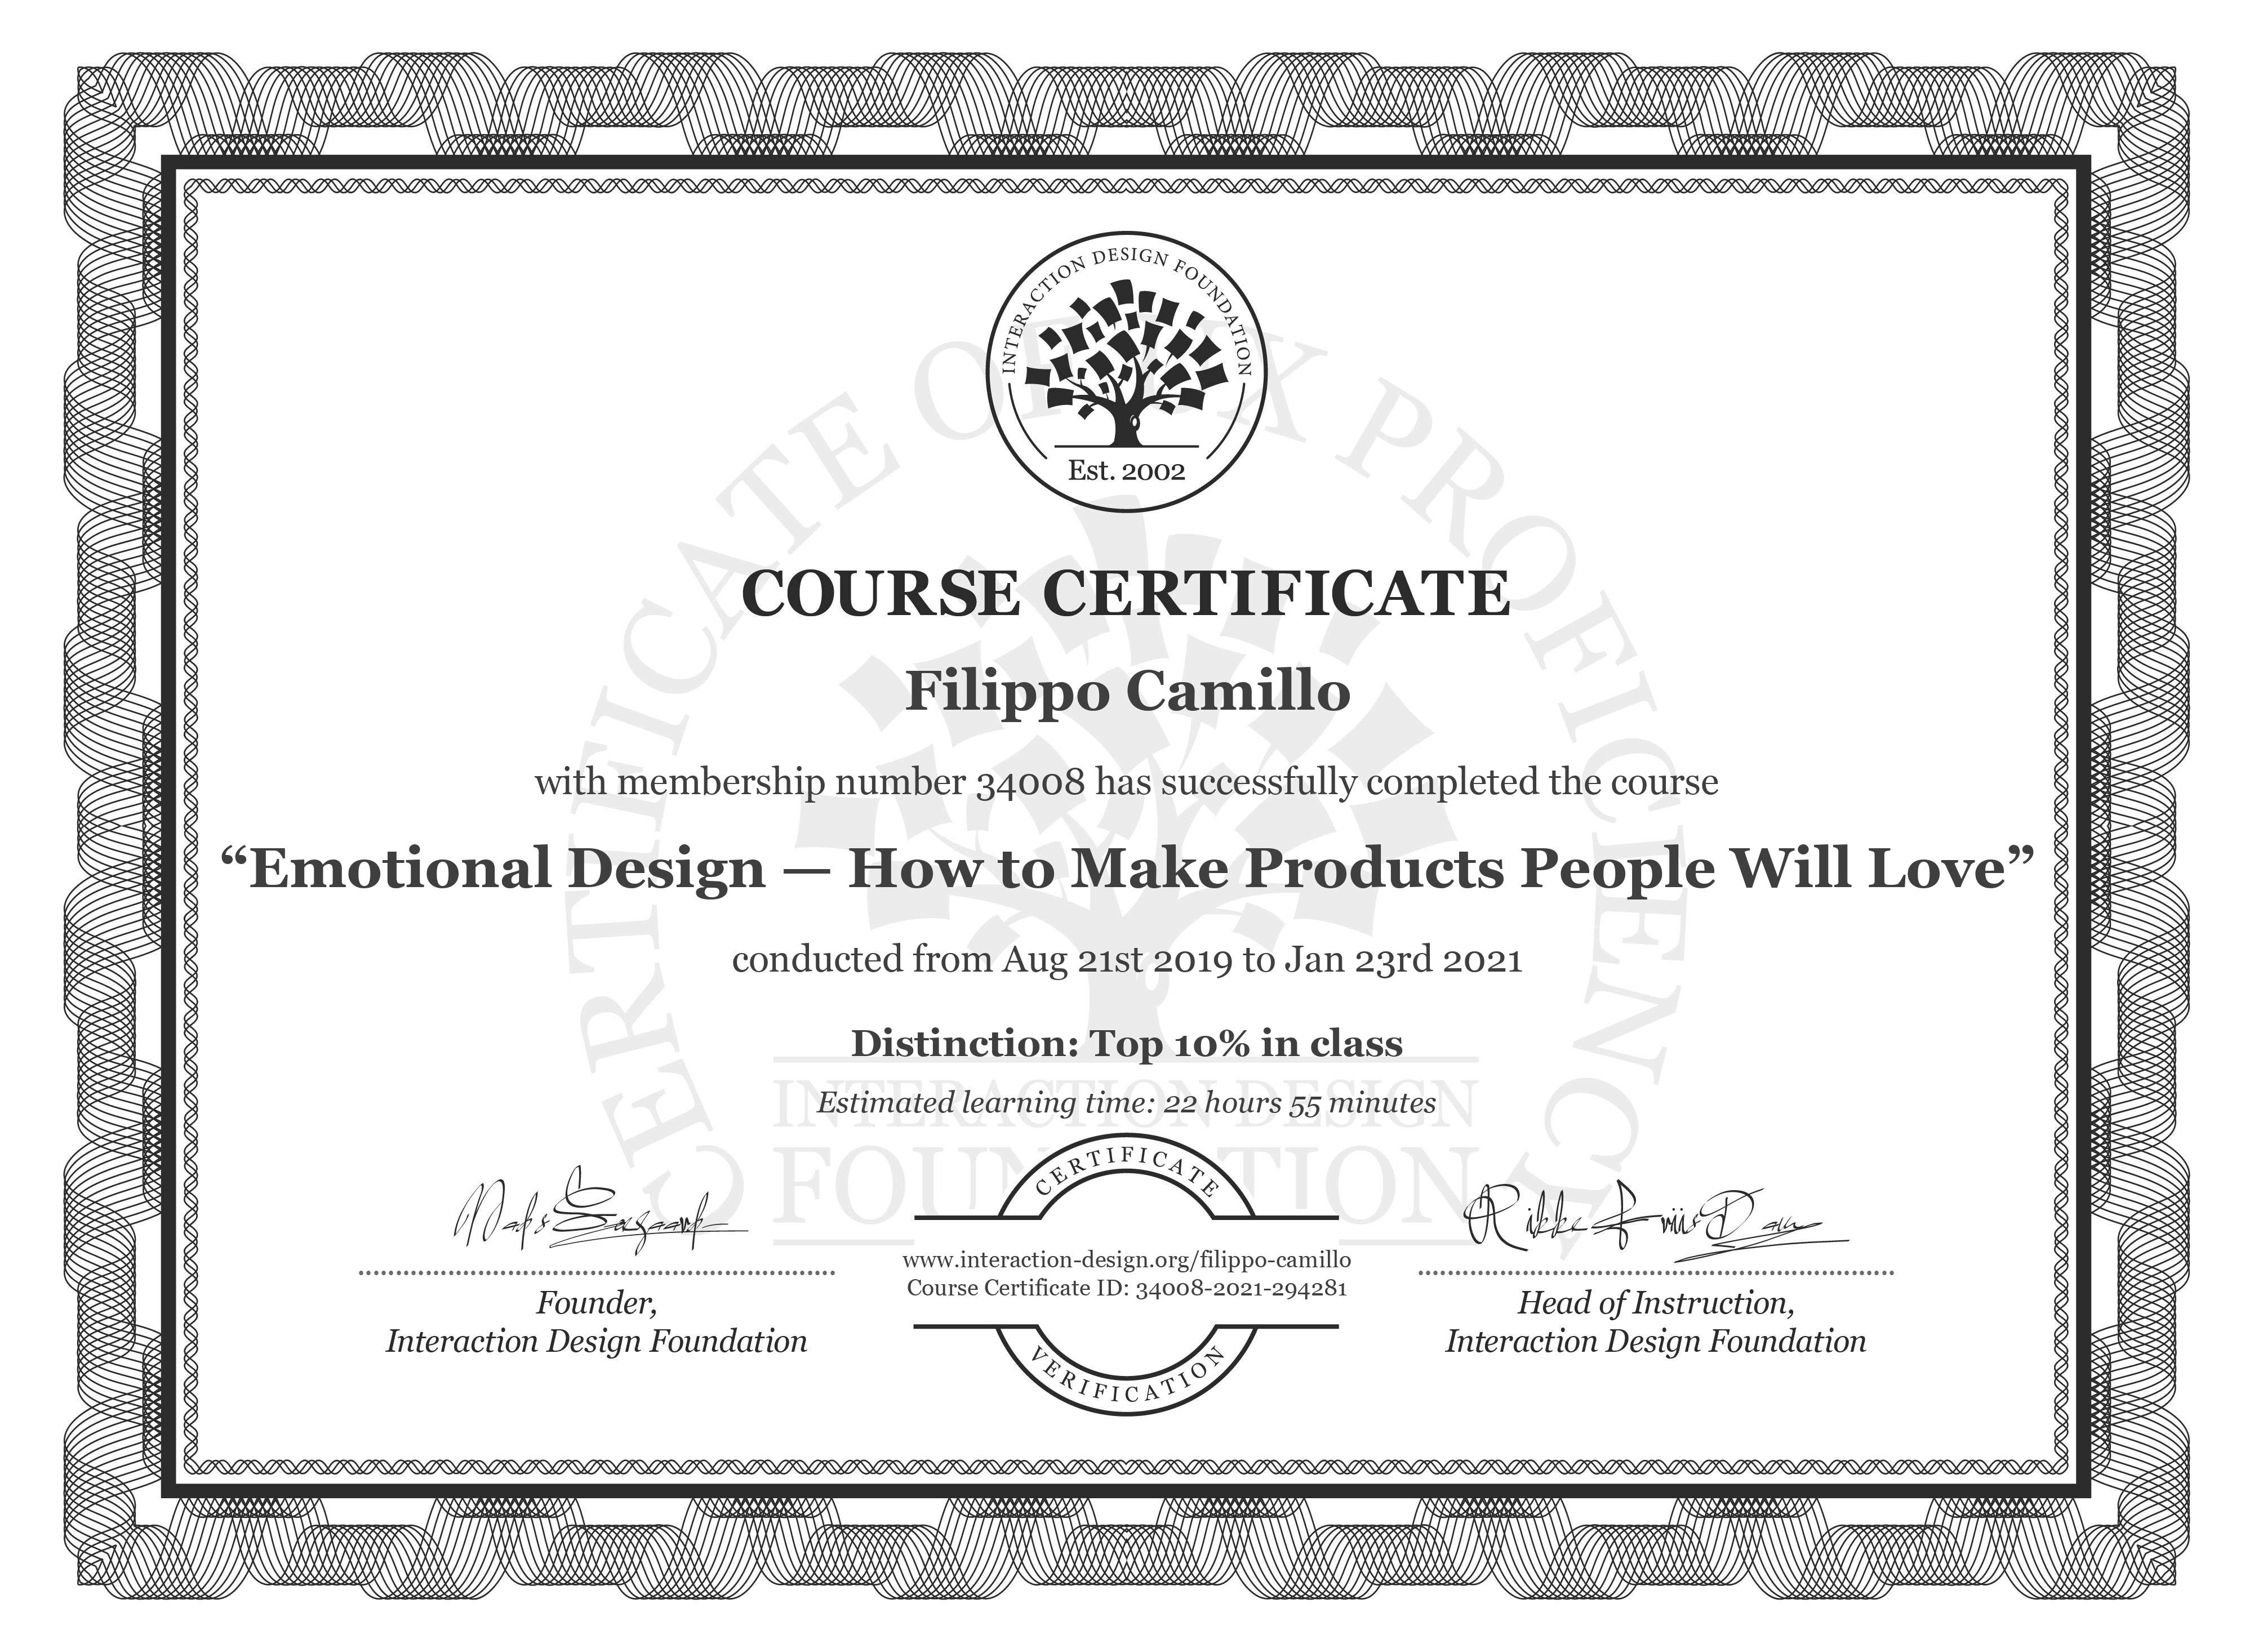 Filippo Camillo's Course Certificate: Emotional Design — How to Make Products People Will Love